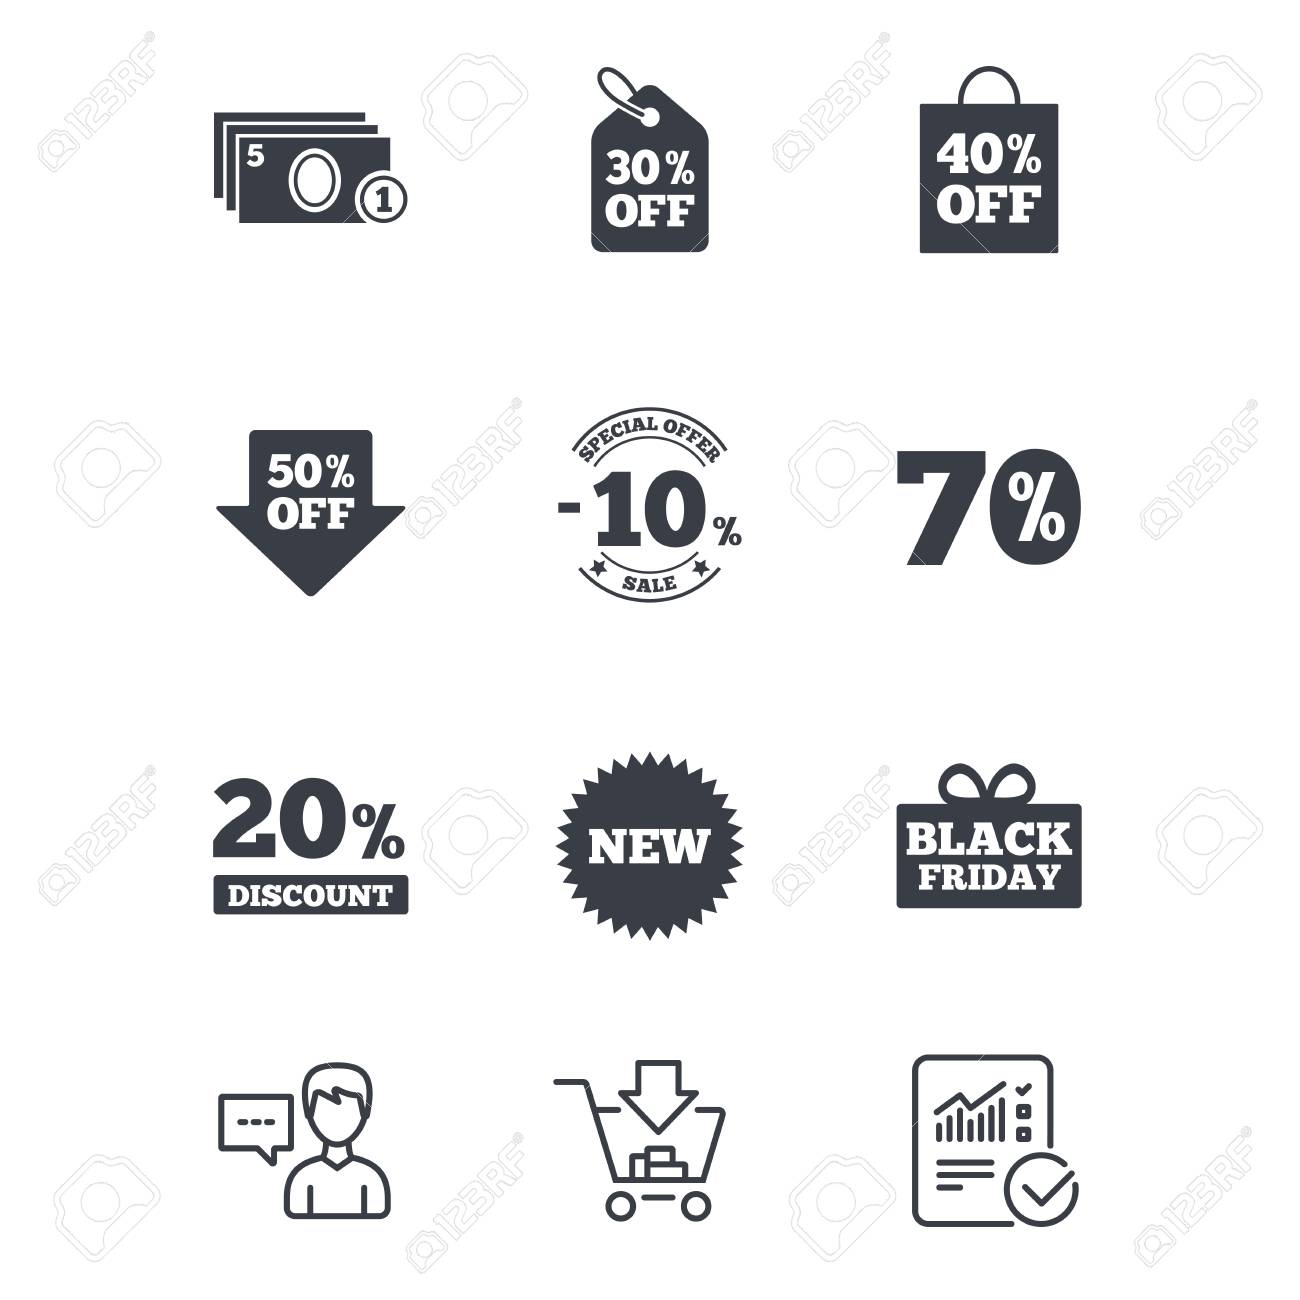 Sale discounts icon shopping black friday and cash money signs shopping black friday and cash money signs 10 20 biocorpaavc Choice Image